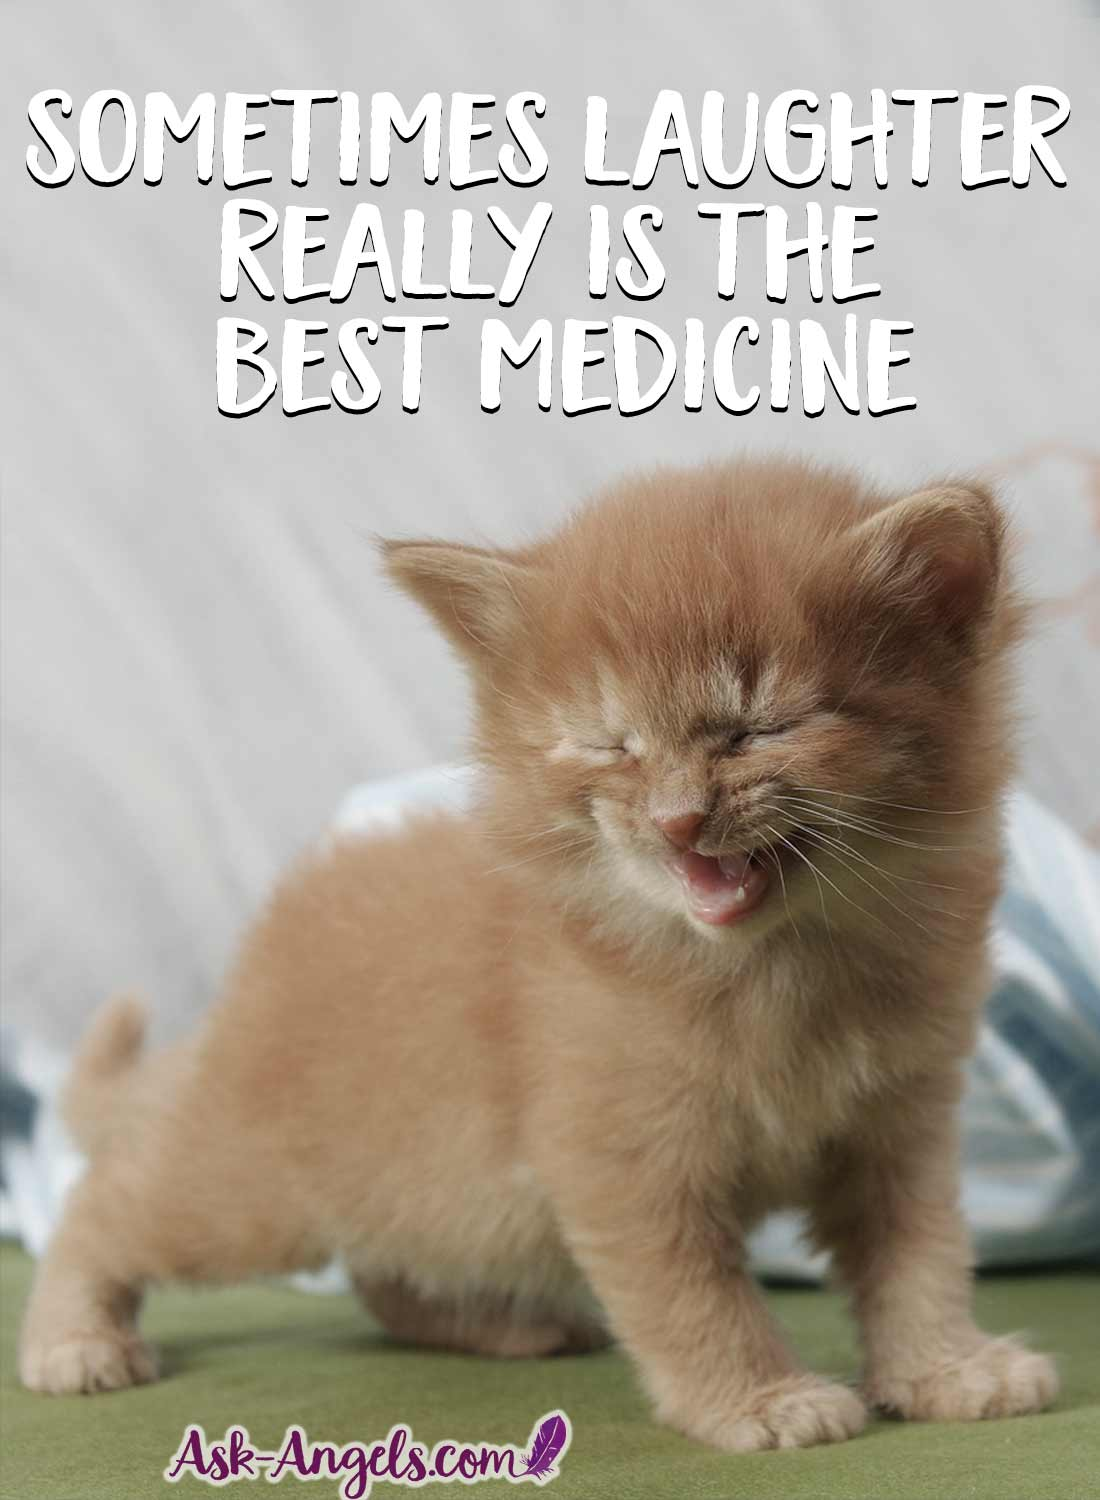 Sometimes laughter really is the best medicine. To clear the mind and balance your energy flow.